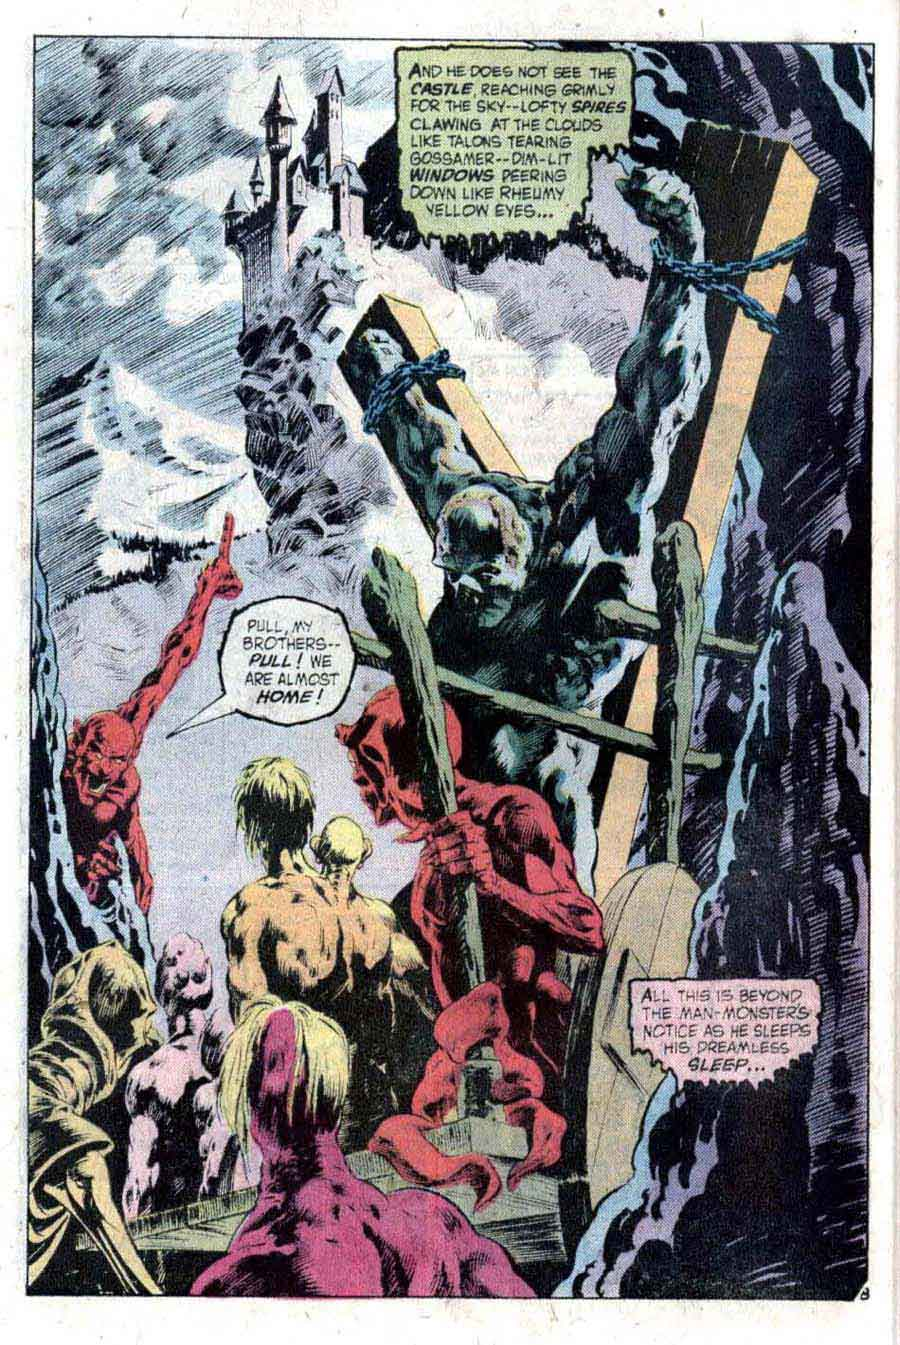 Swamp Thing v1 #2 1970s bronze age dc comic book page art by Bernie Wrightson